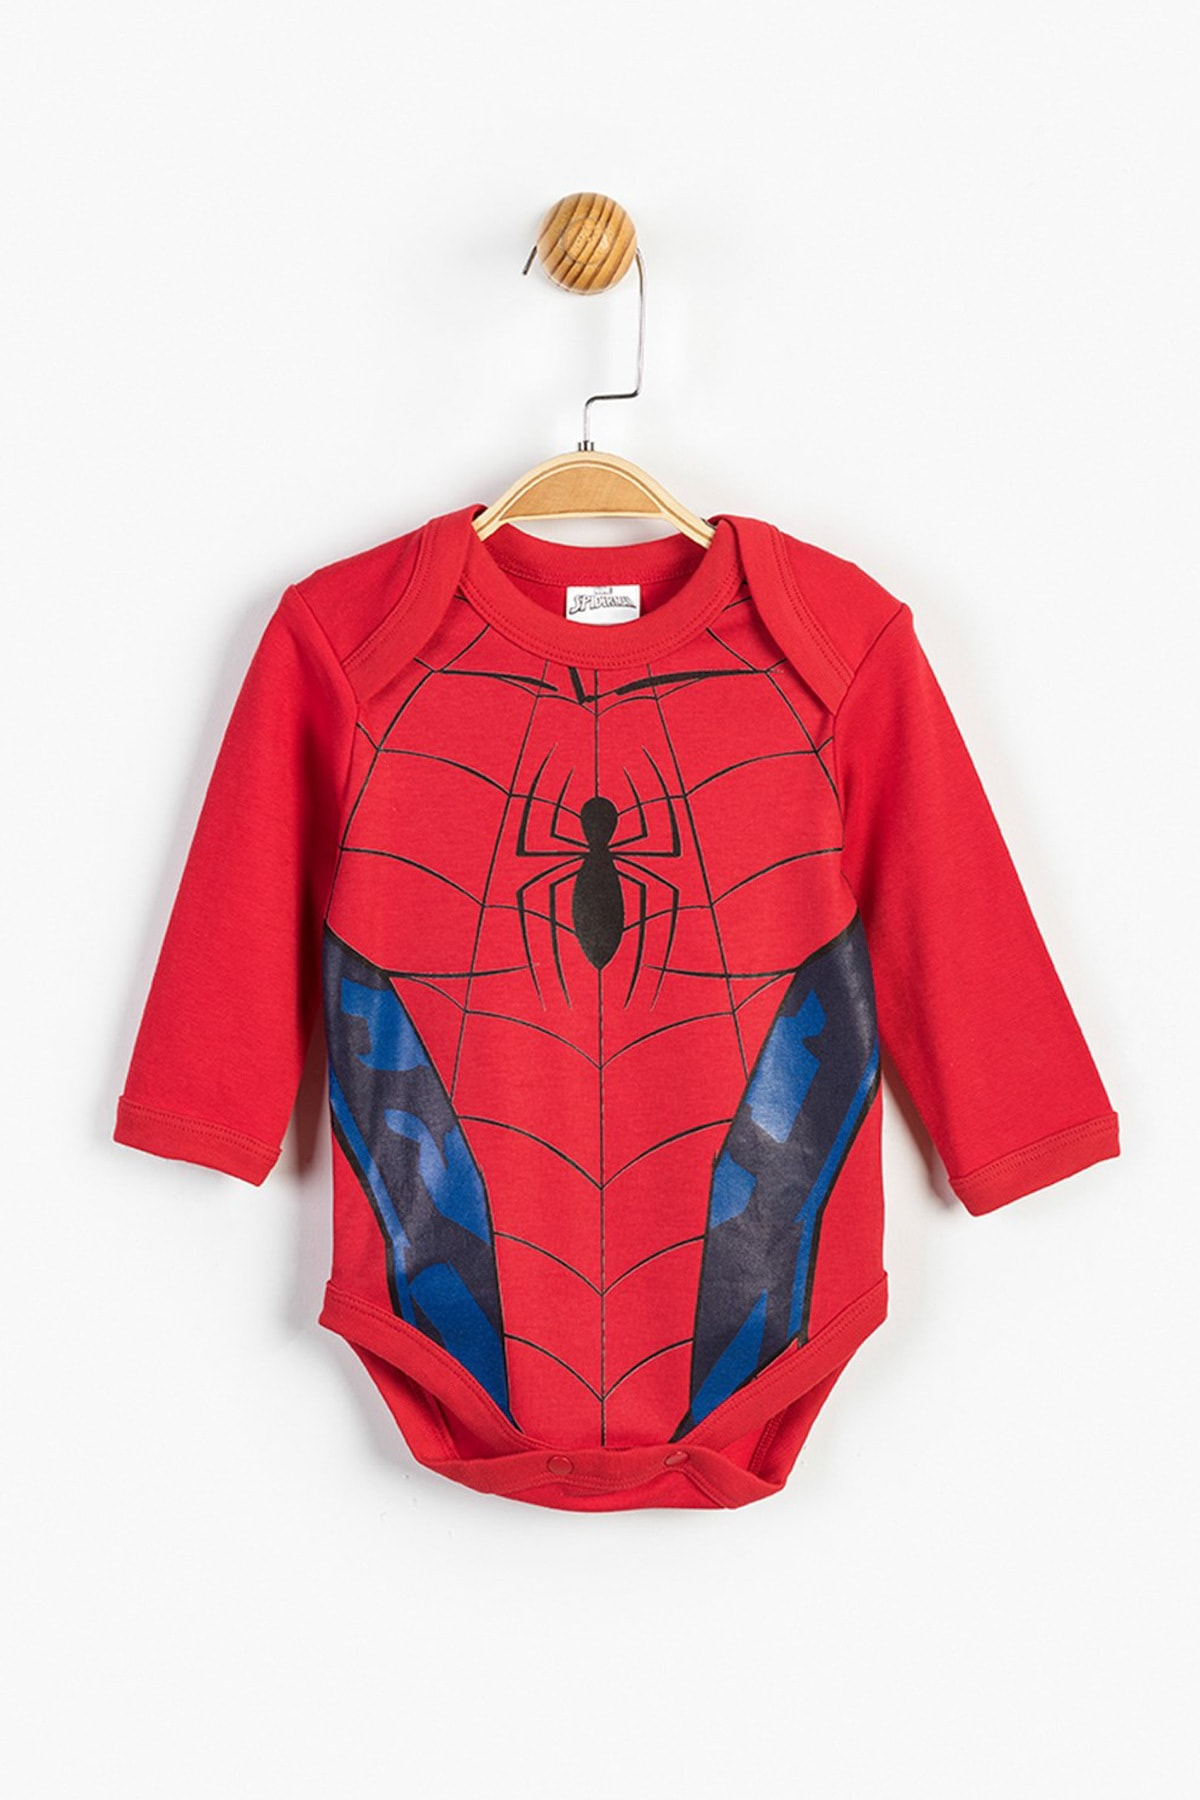 SPIDERMAN Bebek Kostüm Body 13729 1